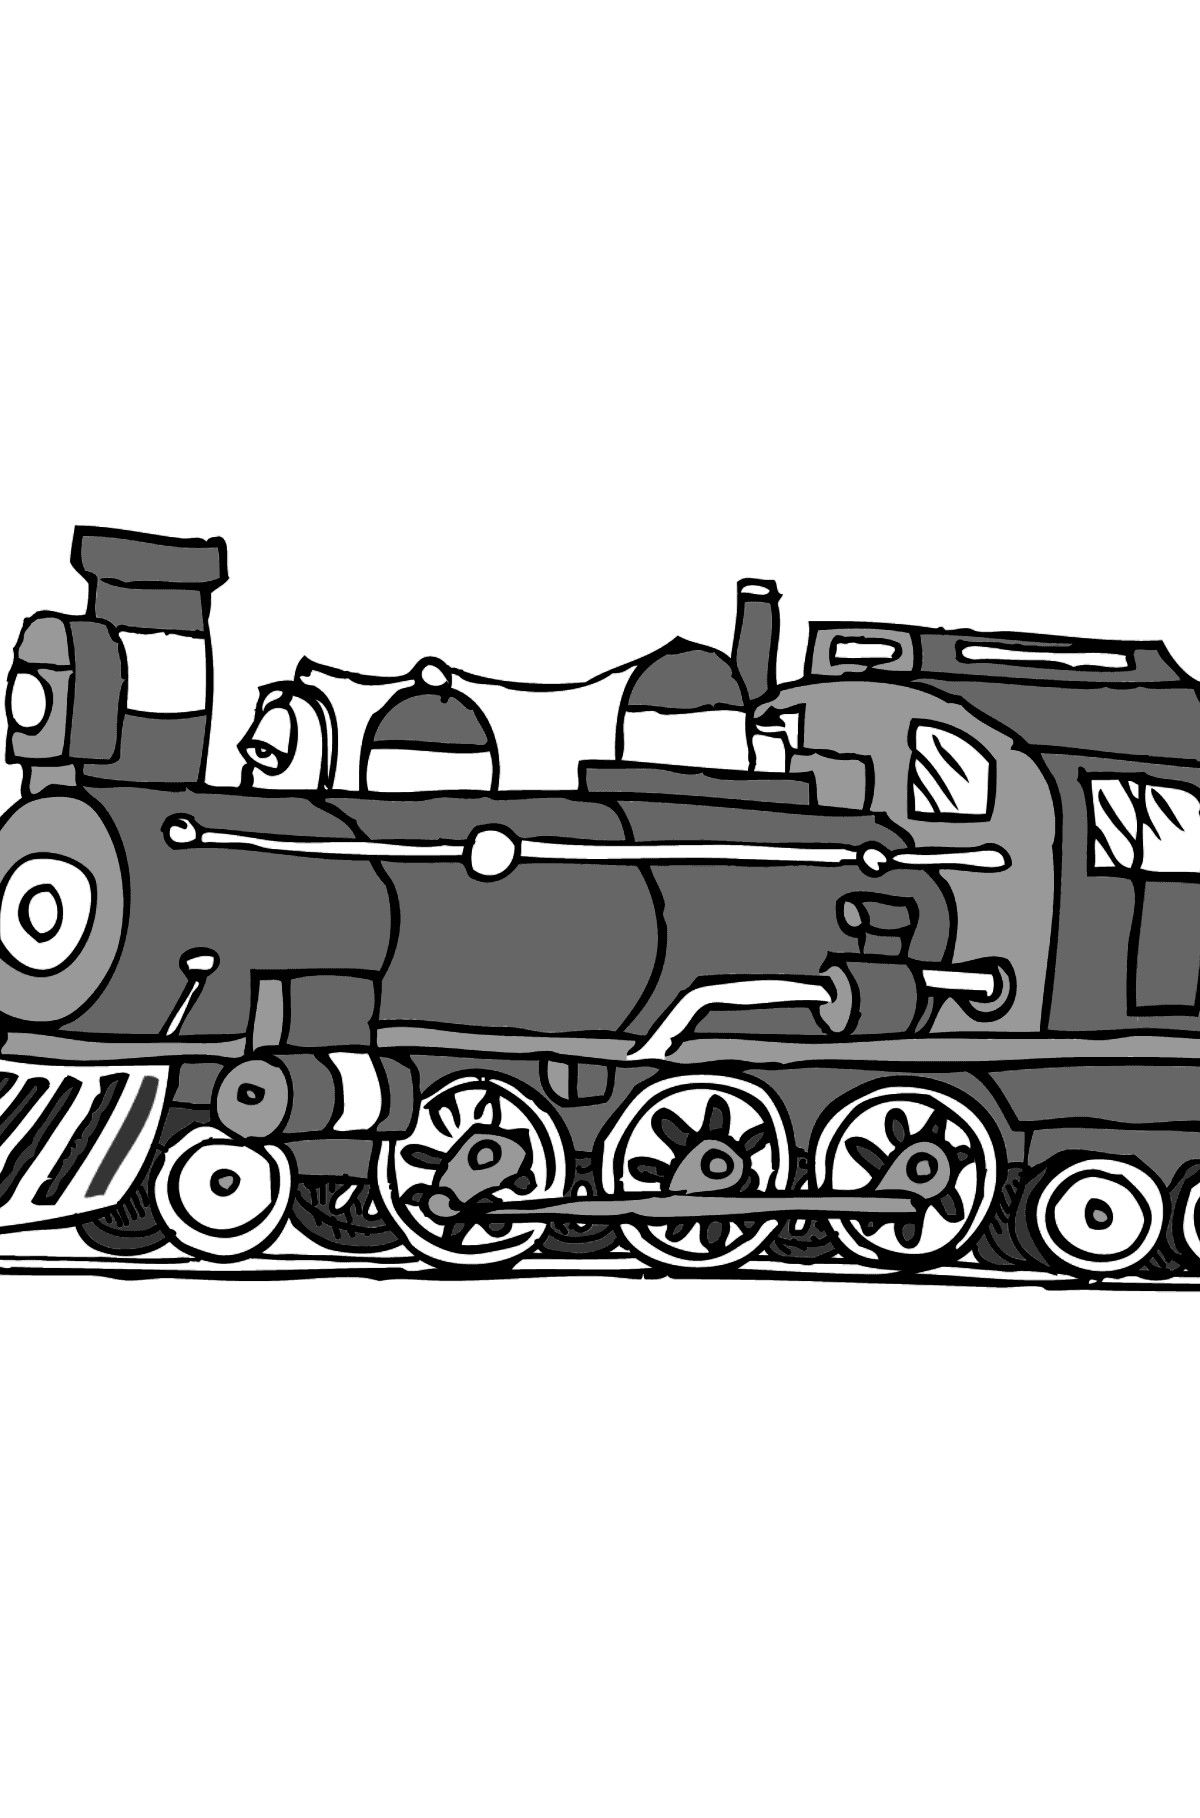 Coloring Page - A Locomotive - Coloring Pages for Kids